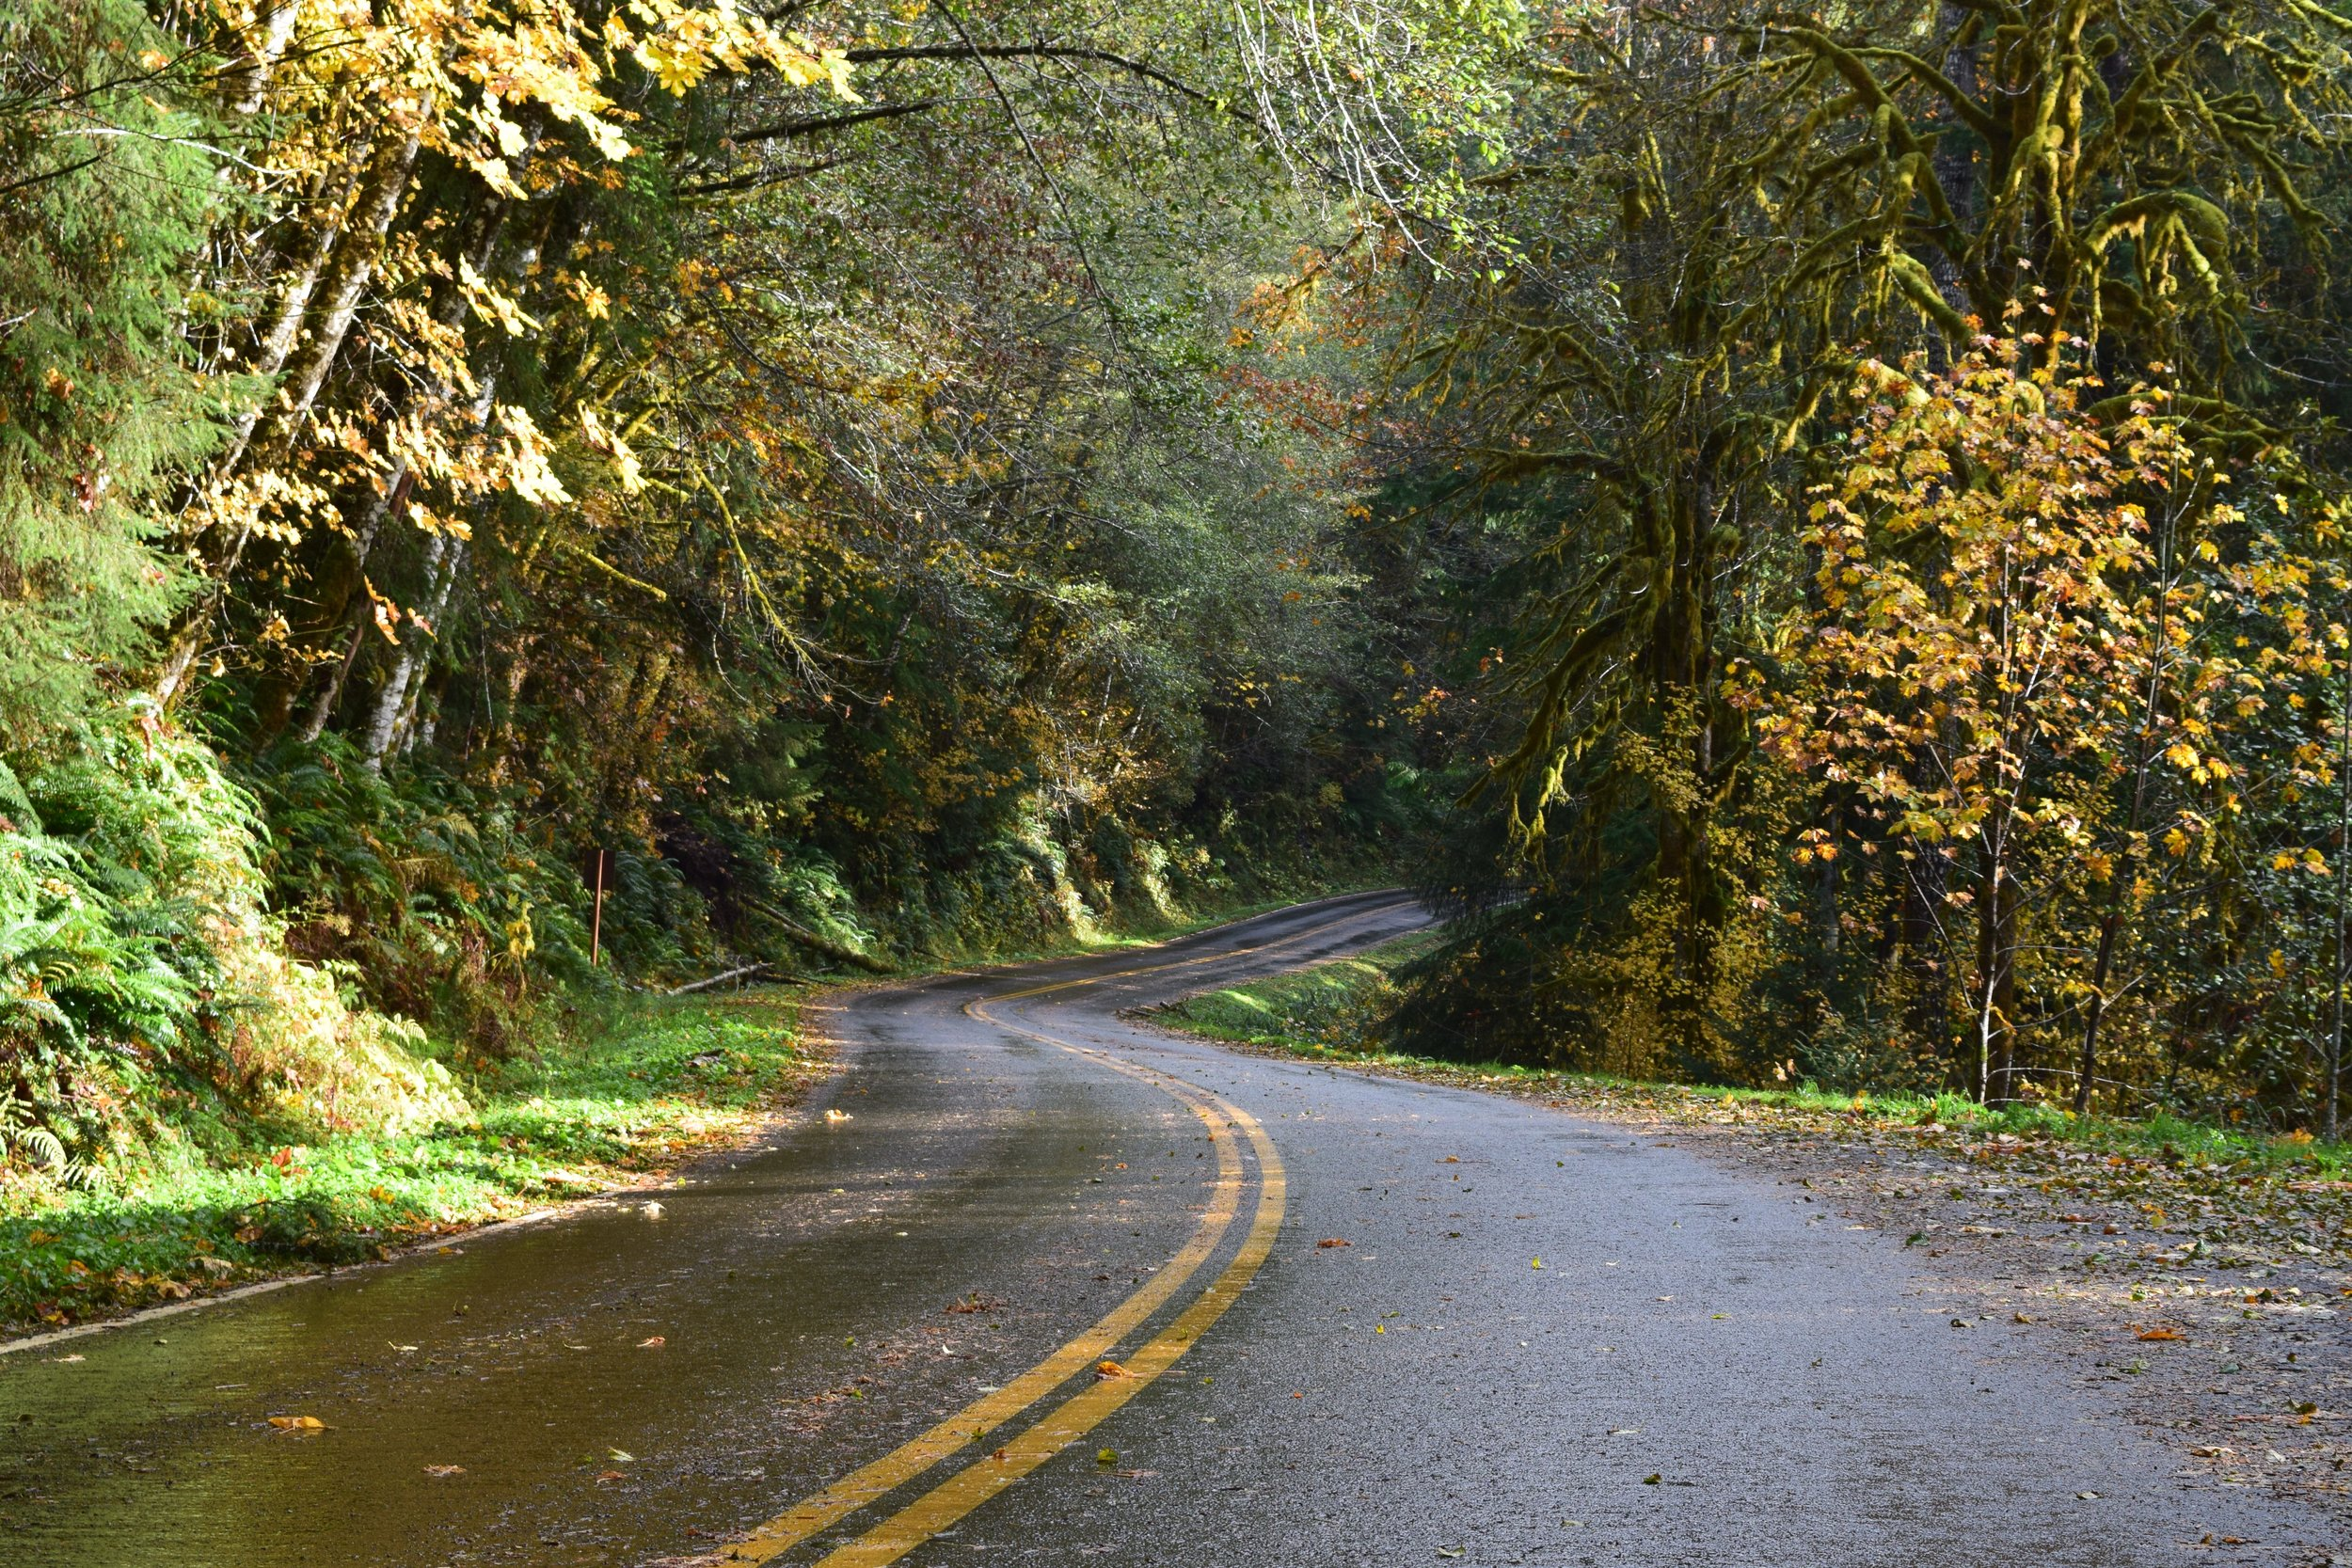 The Road into the Sol Duc Valley